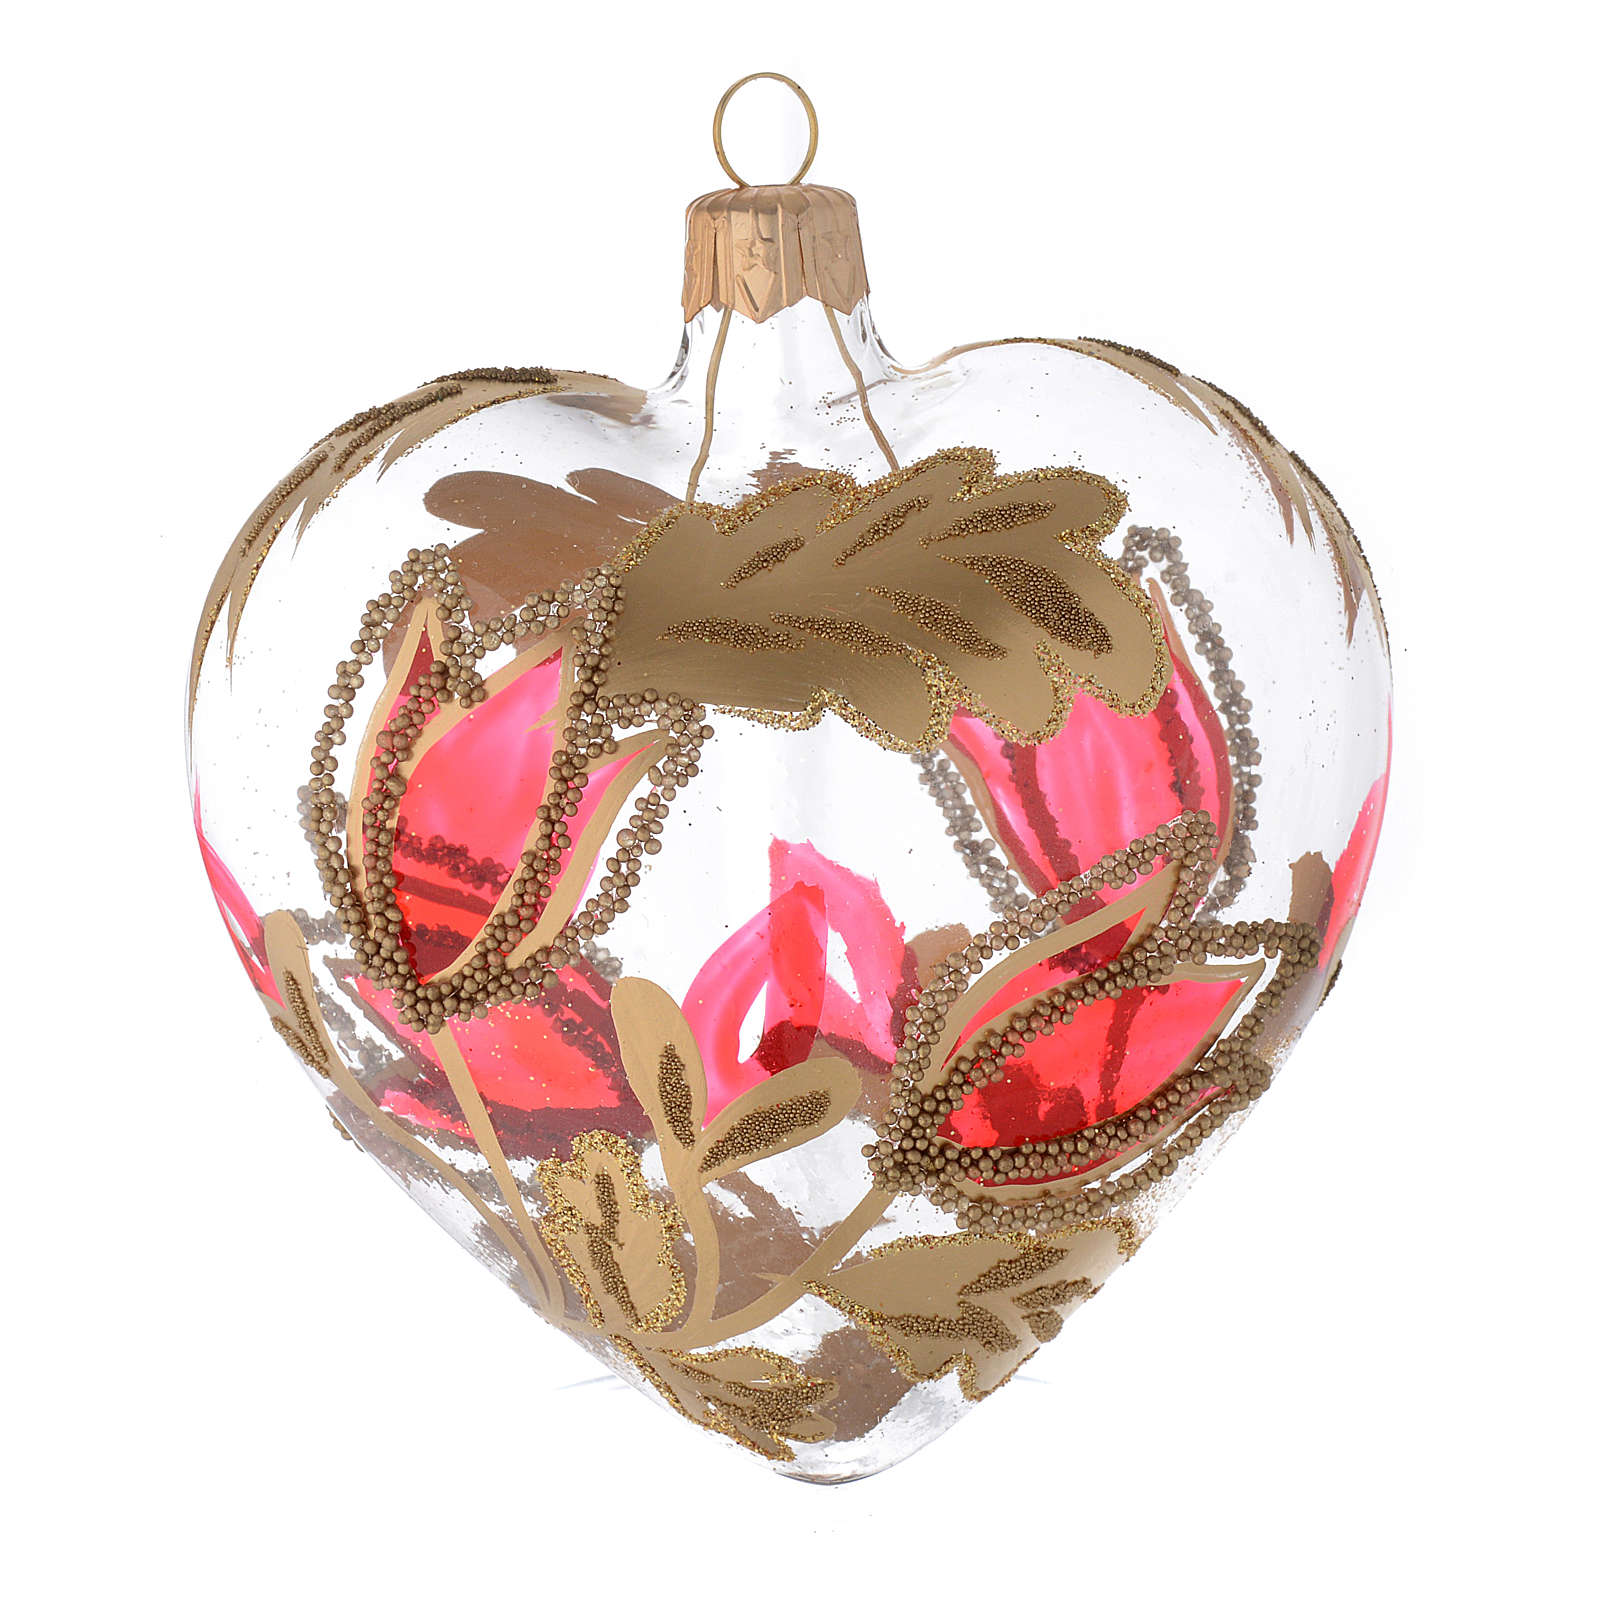 Heart Shaped Bauble in blown glass with red and gold decoration in relief 100mm 4